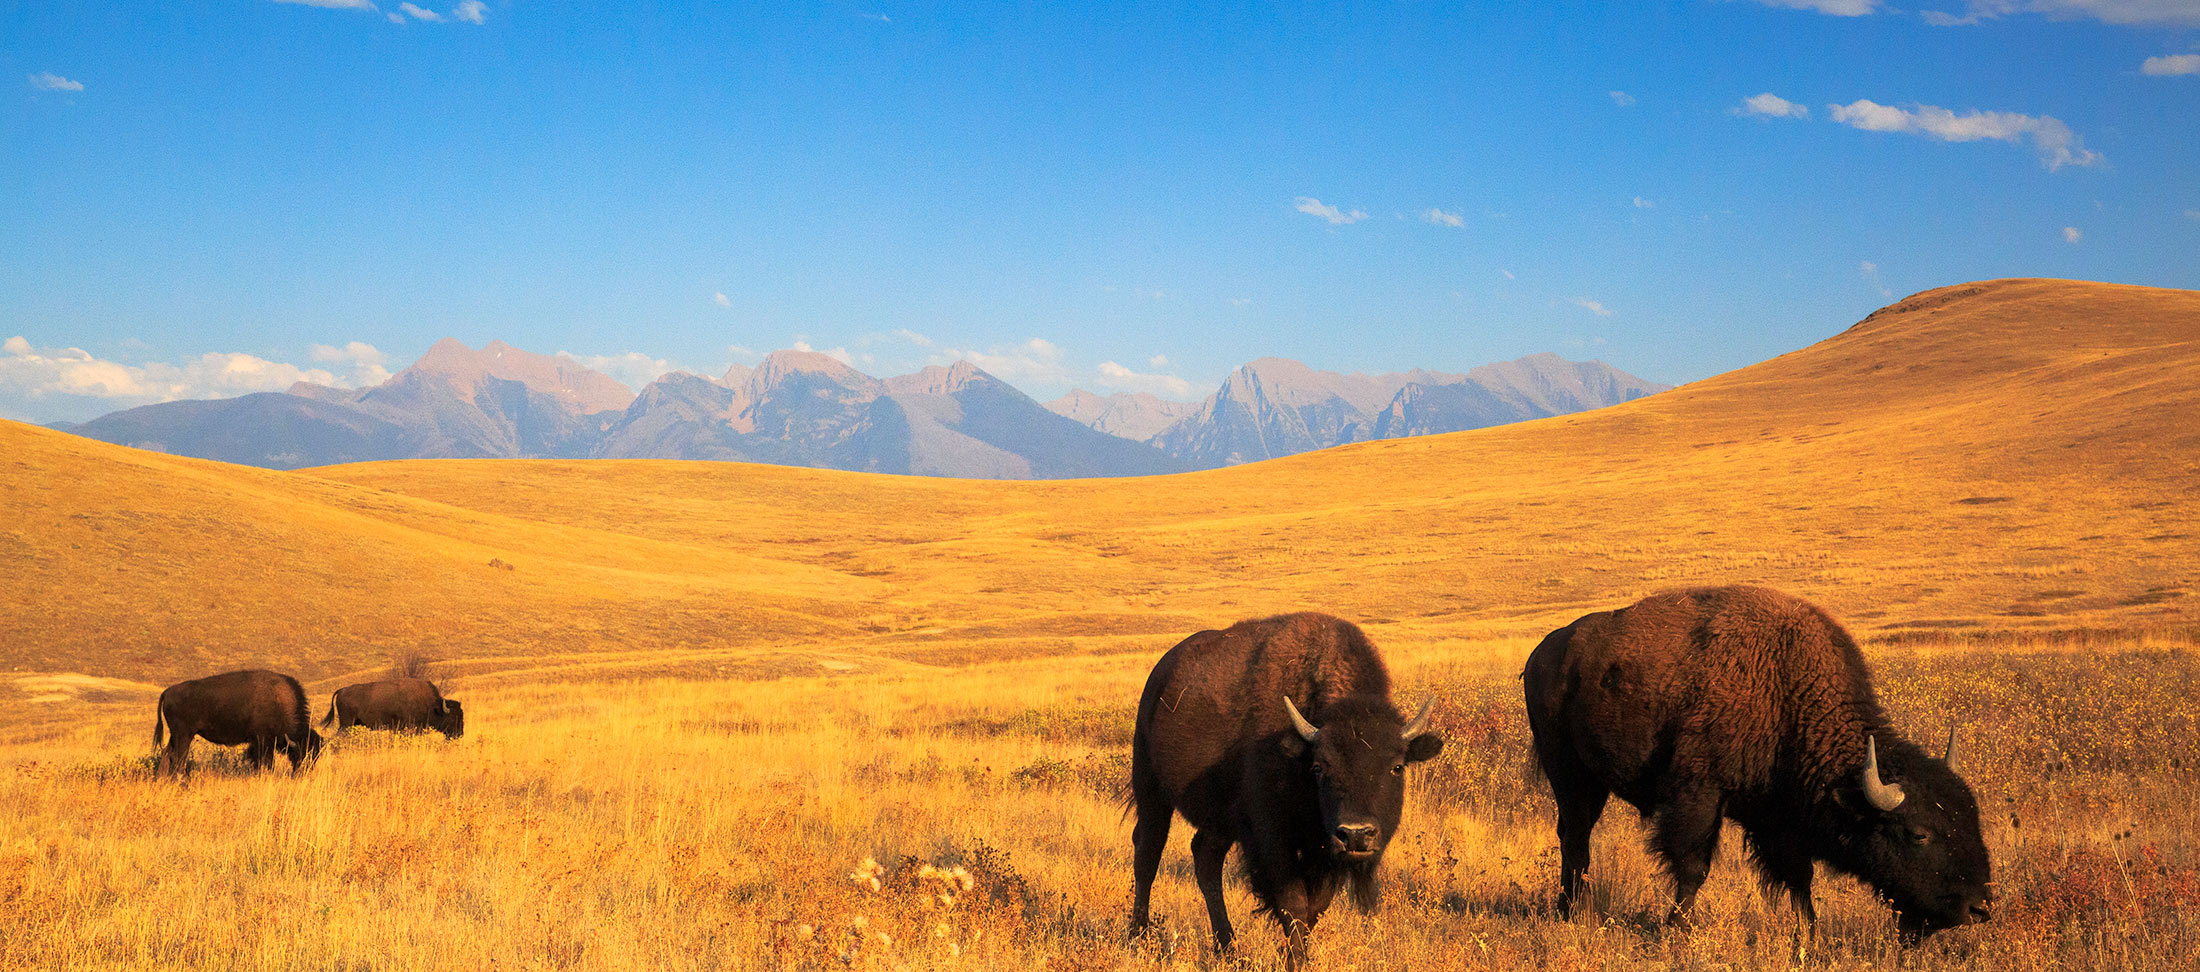 Do some wildlife viewing in the fall in Western Montana. Areas include the Lee Metcalf National Wildlife Refuge, Glacier National Park and the National Bison Range.